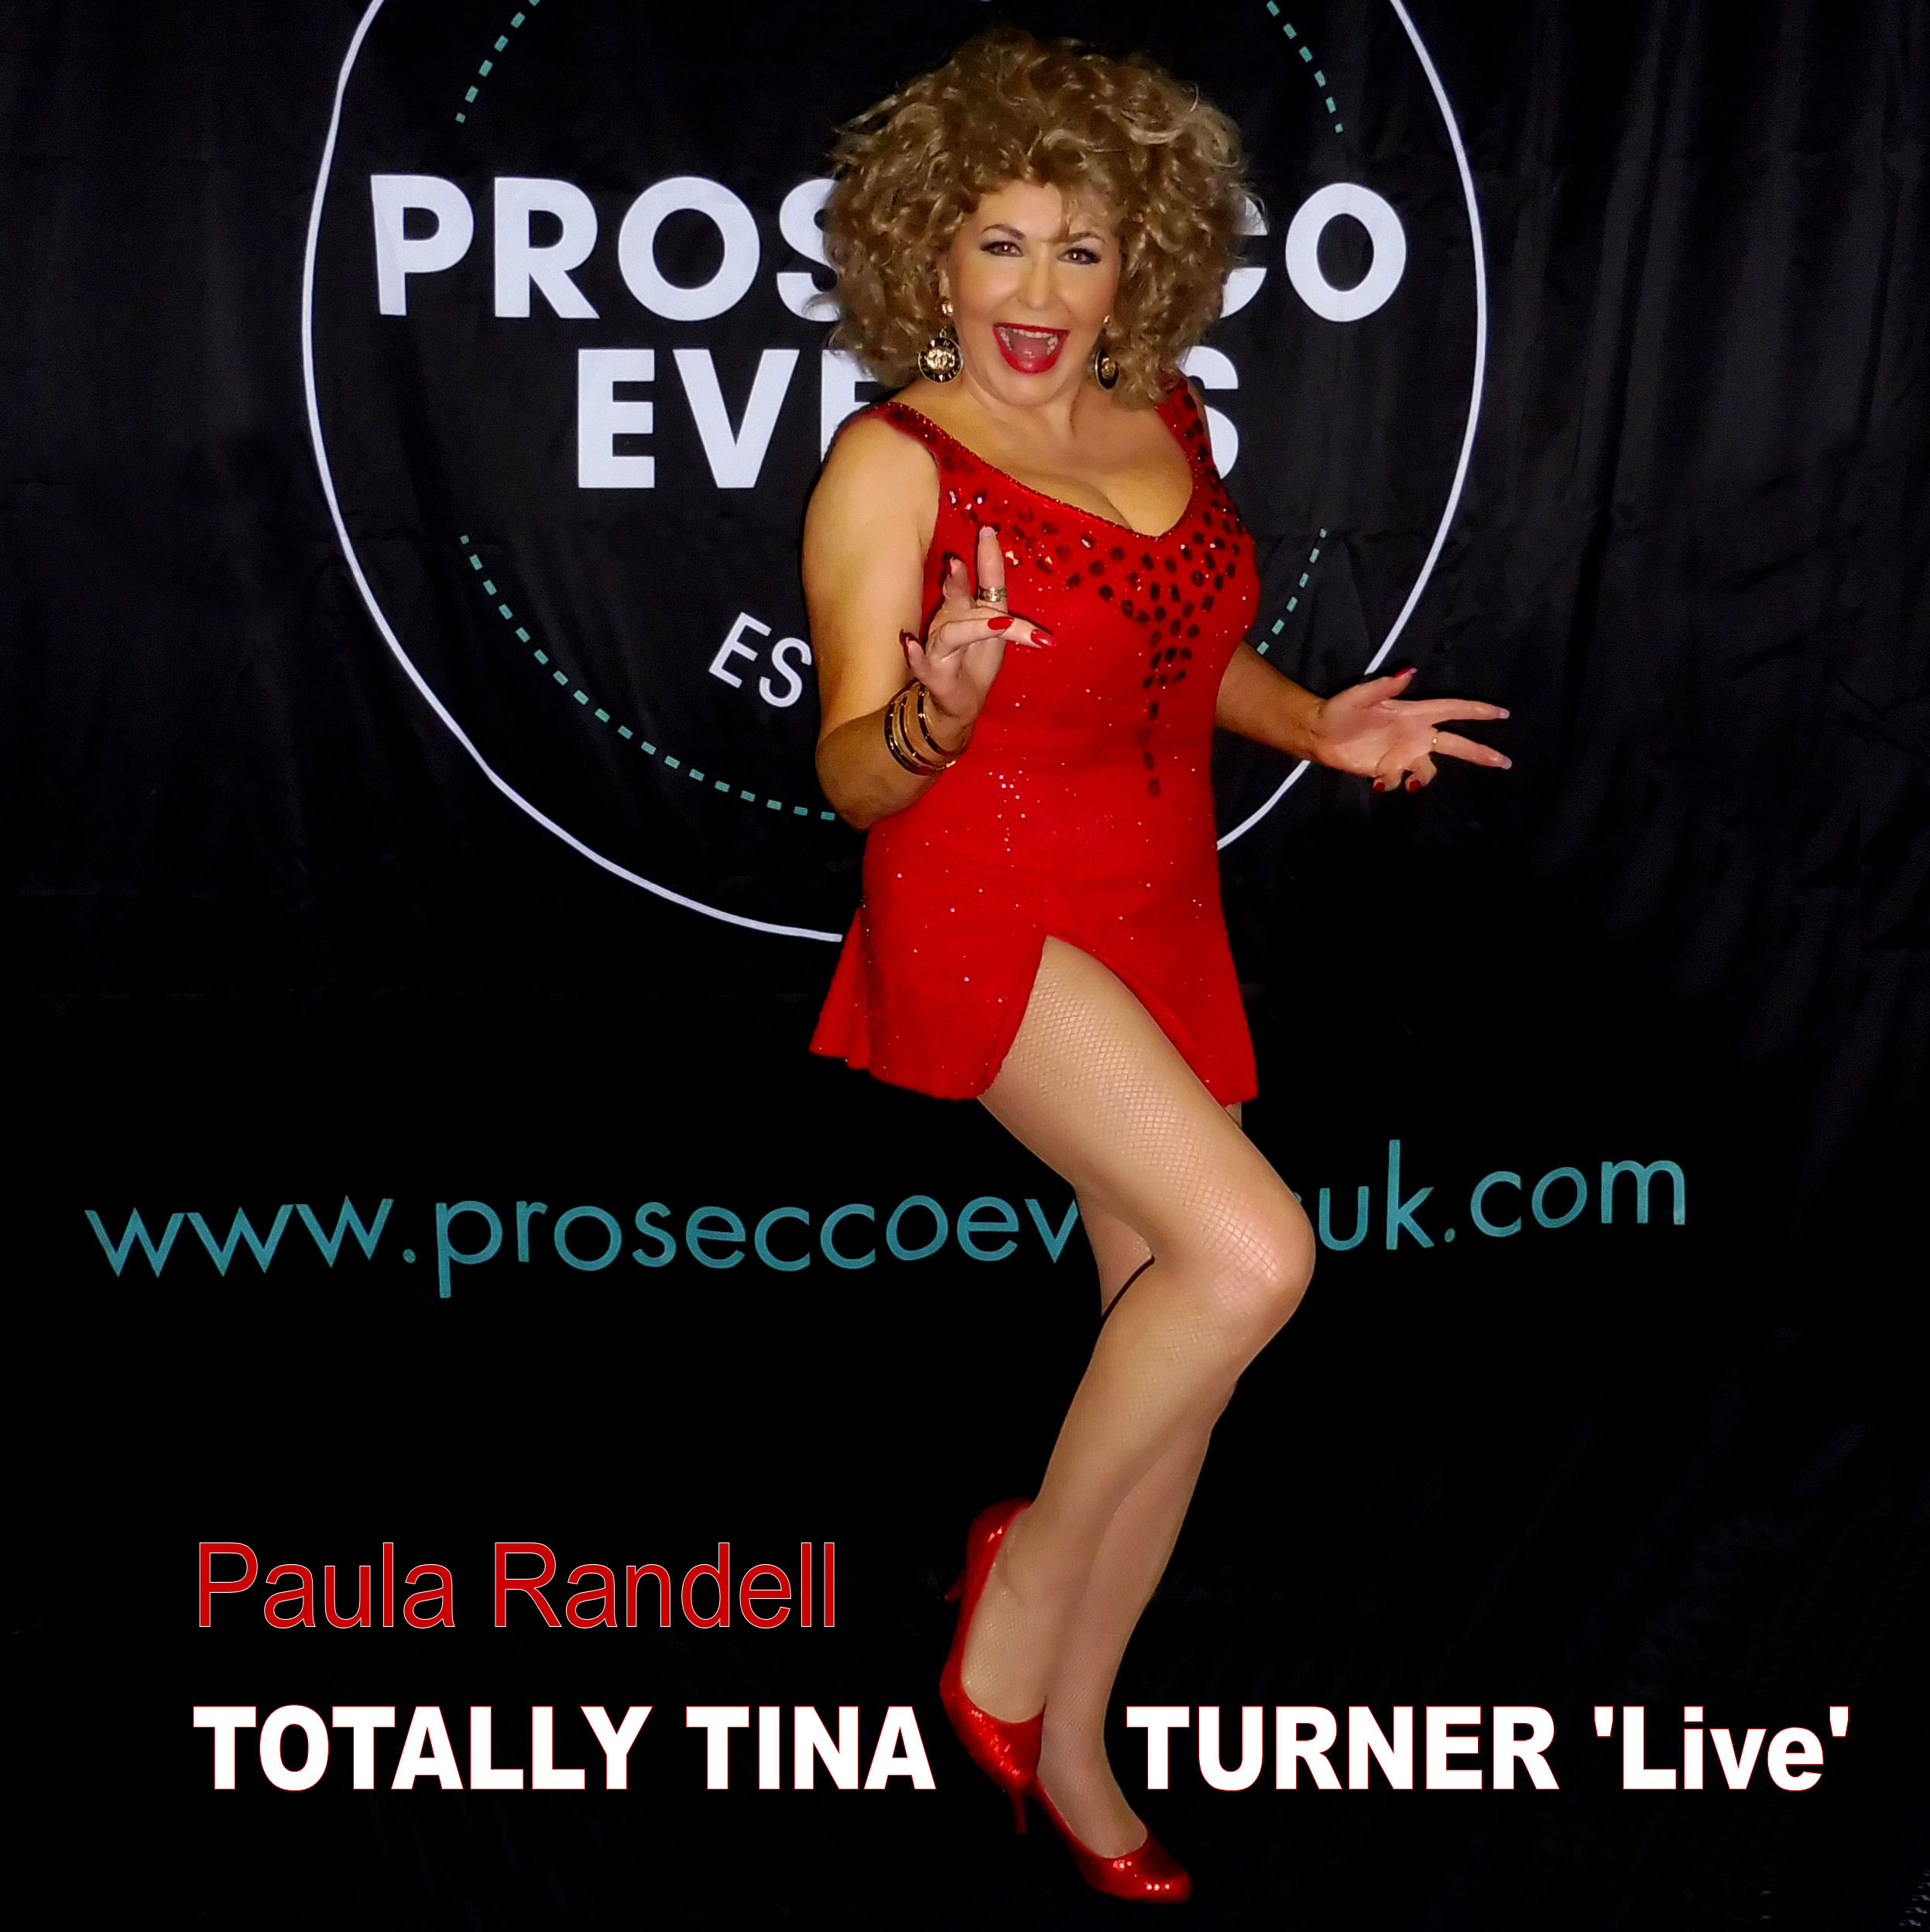 Tina Turner Tribute On Prosecco Tour